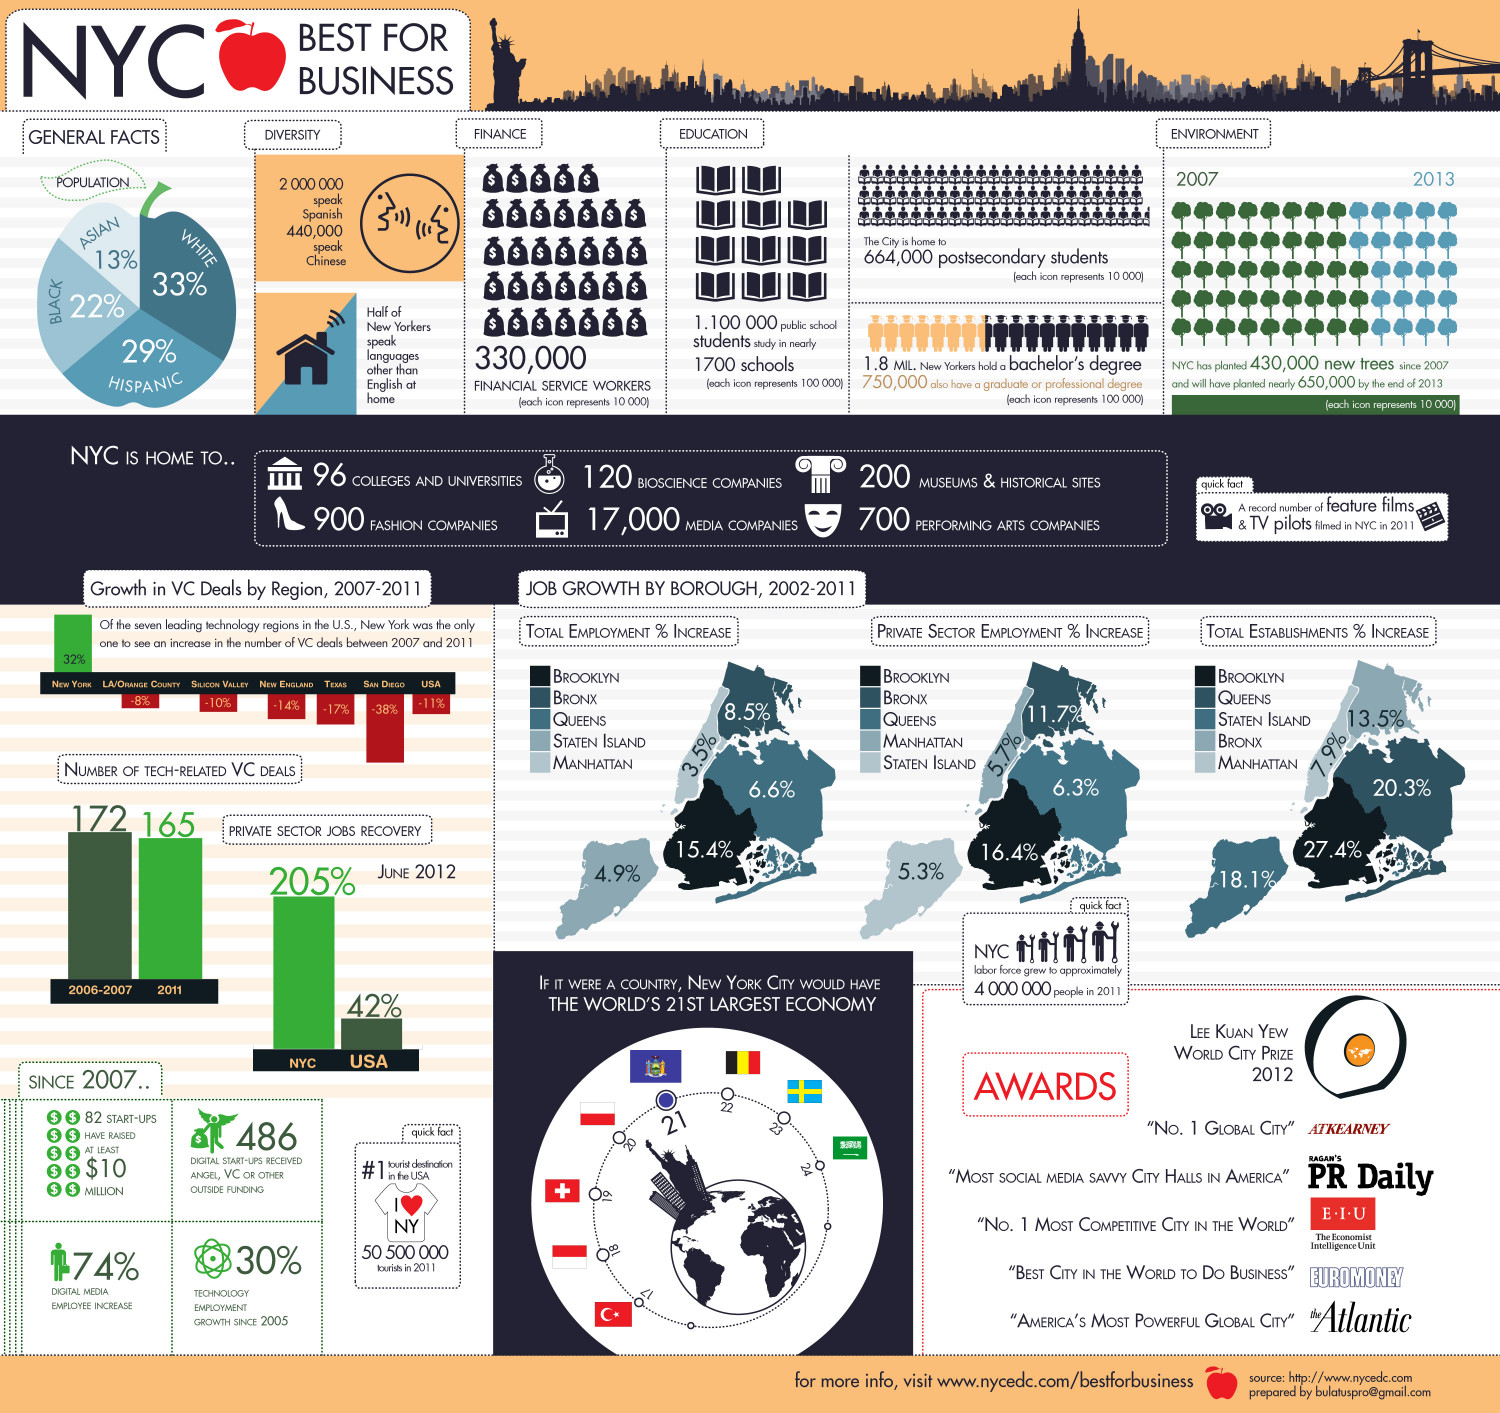 Big Apple Best for business (NYC) Infographic